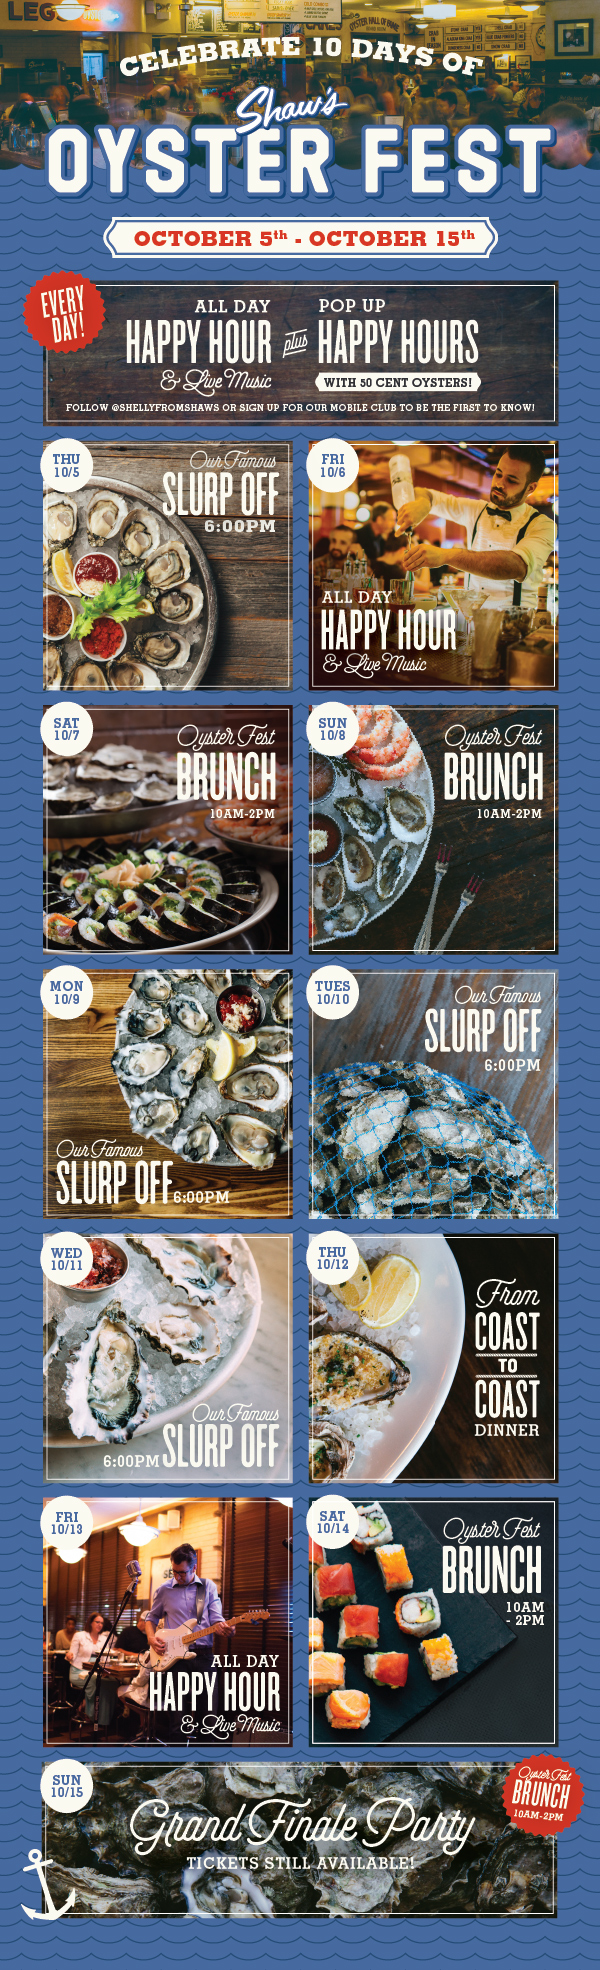 The Oyster Fest's scheudle in a graphic form